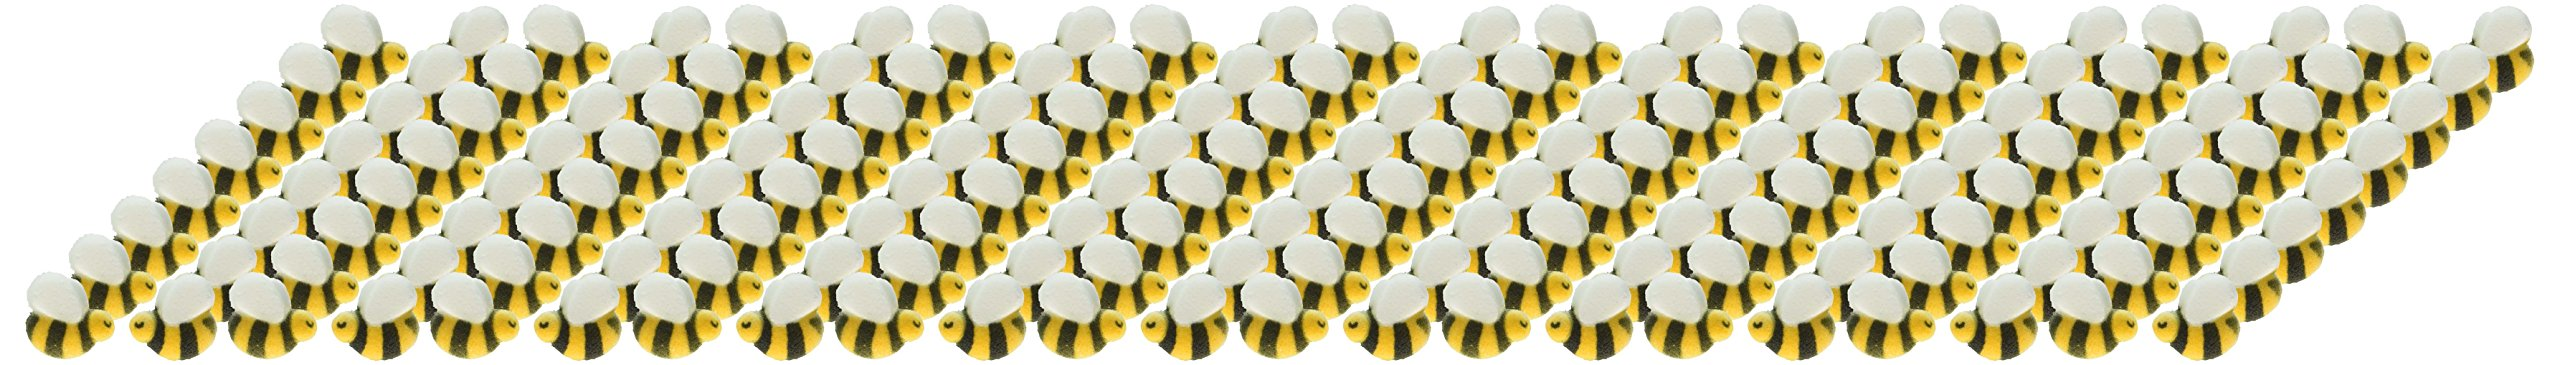 Lucks Dec-Ons Decorations Molded Sugar/Cup-Cake Topper, Bumble Bees Assortment, 1 Inch, 176 Count by Lucks (Image #1)